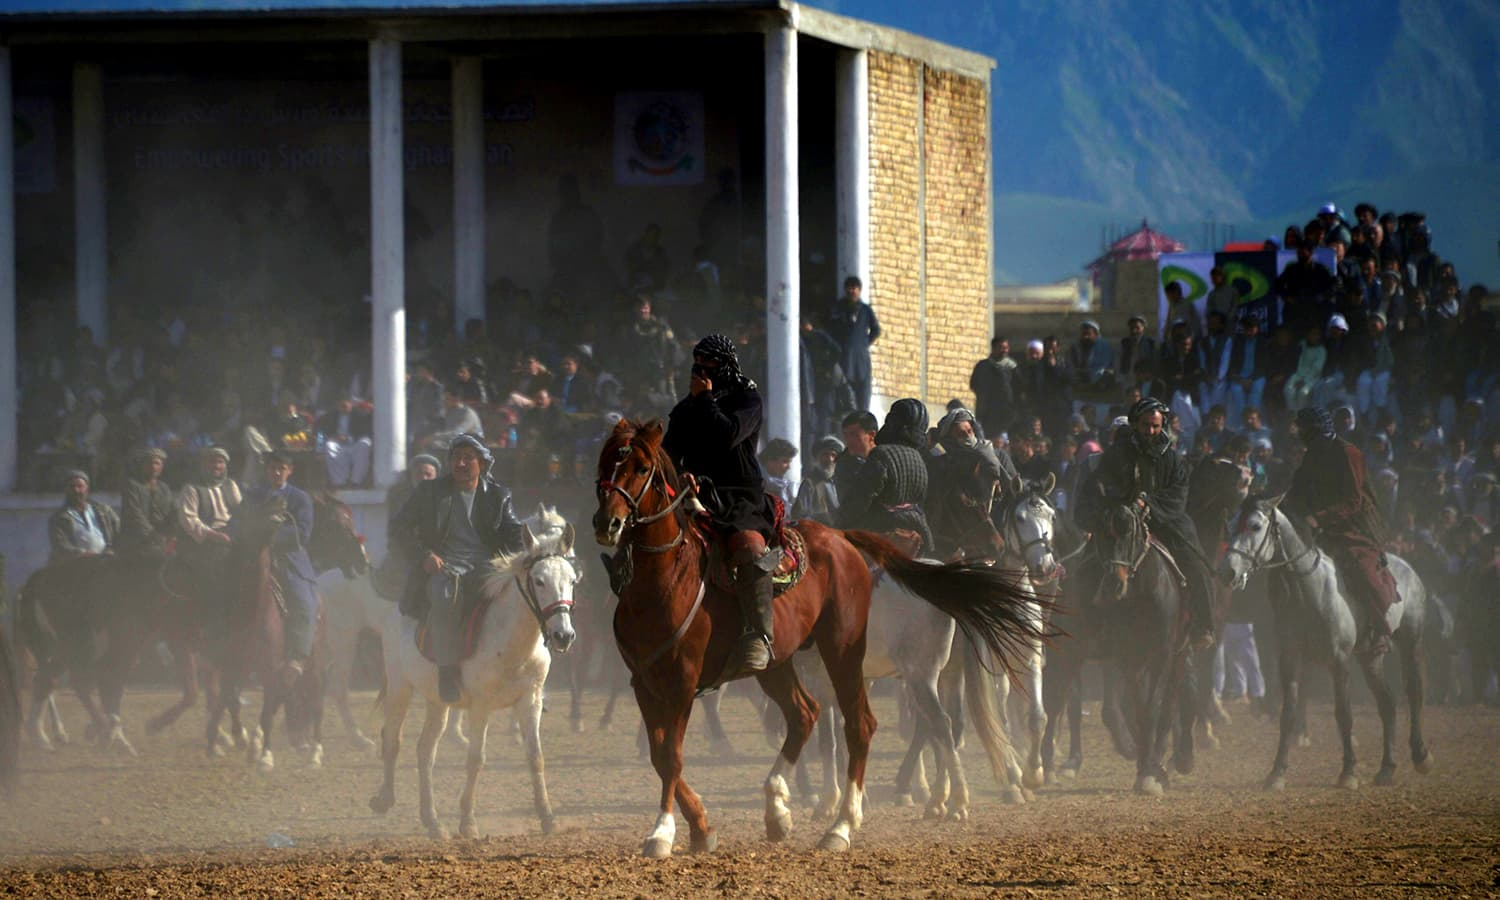 Afghan horsemen compete for a veal carcass during buzkashi during celebrations for the Persian New Year. ─ AFP